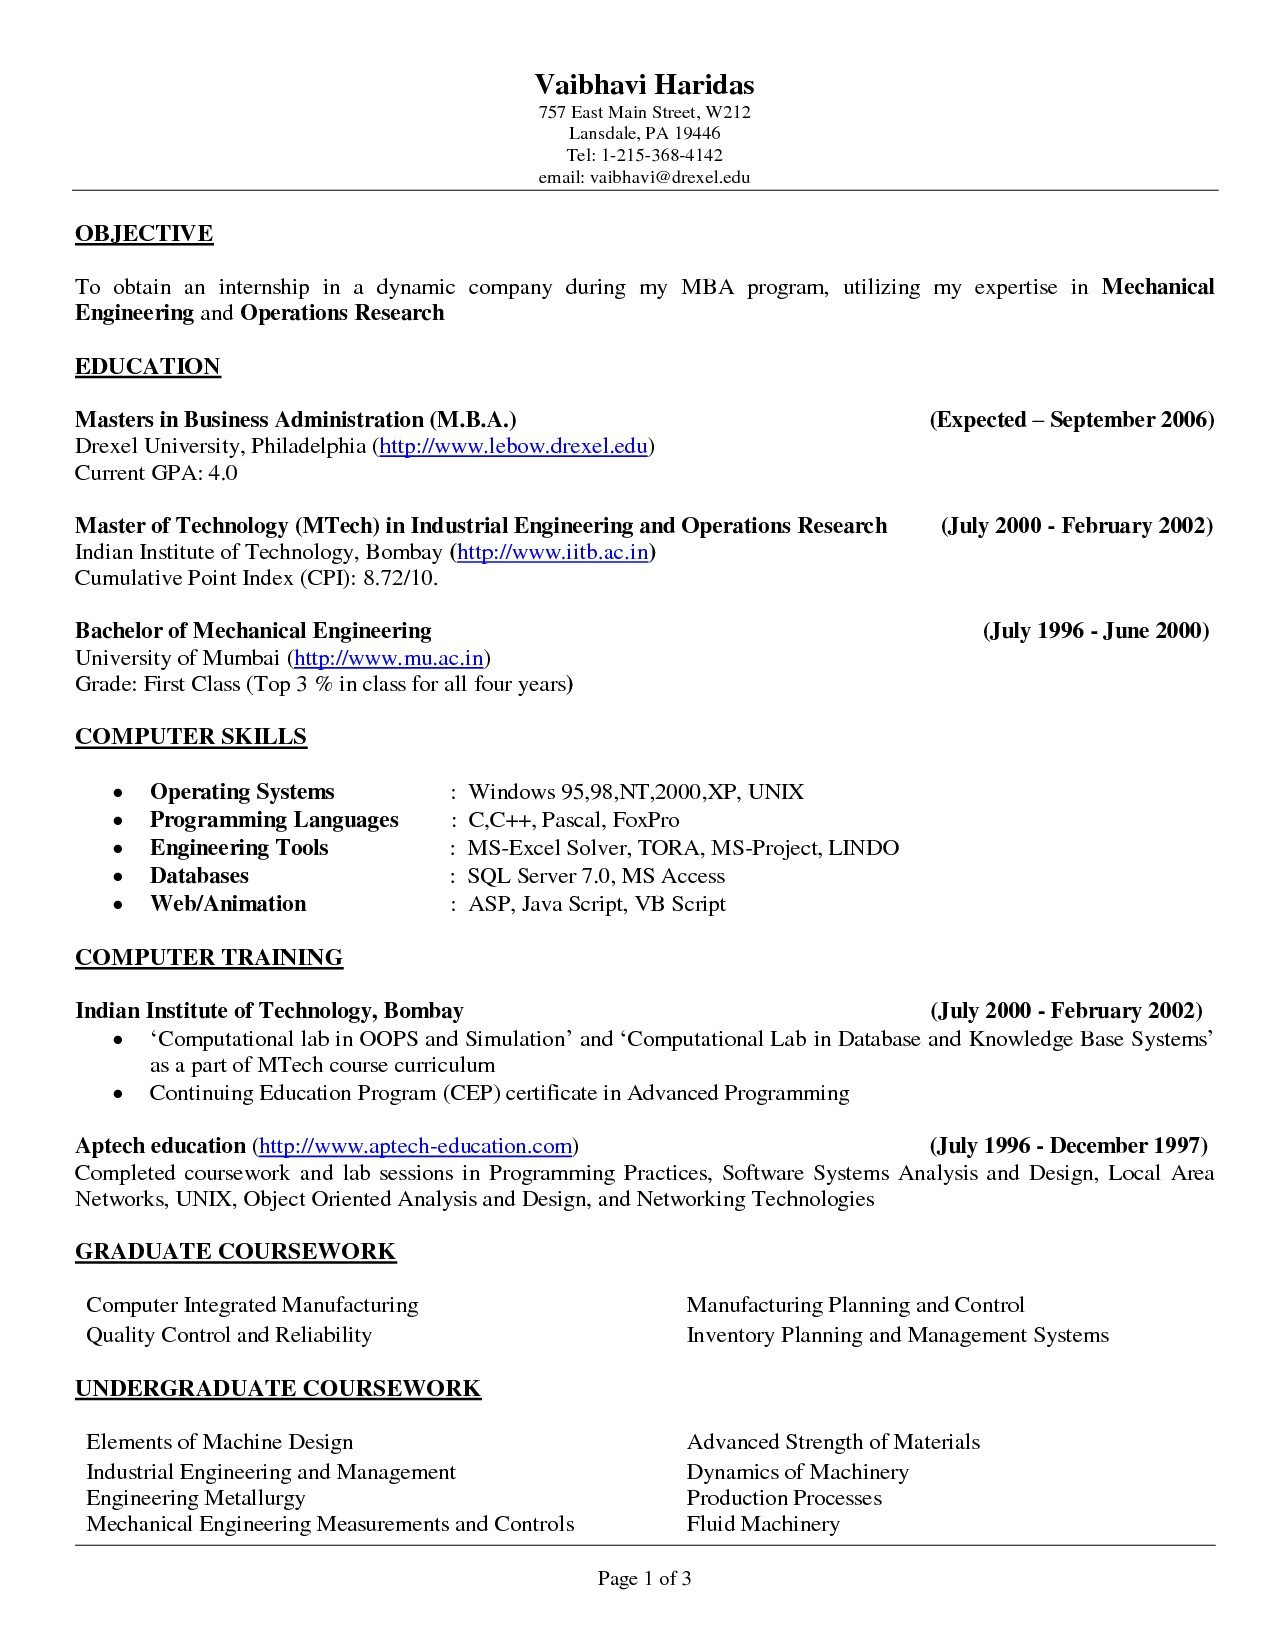 Resume Self Descriptive Words - Descriptive Words for Resume 15 New Descriptive Words for Resume